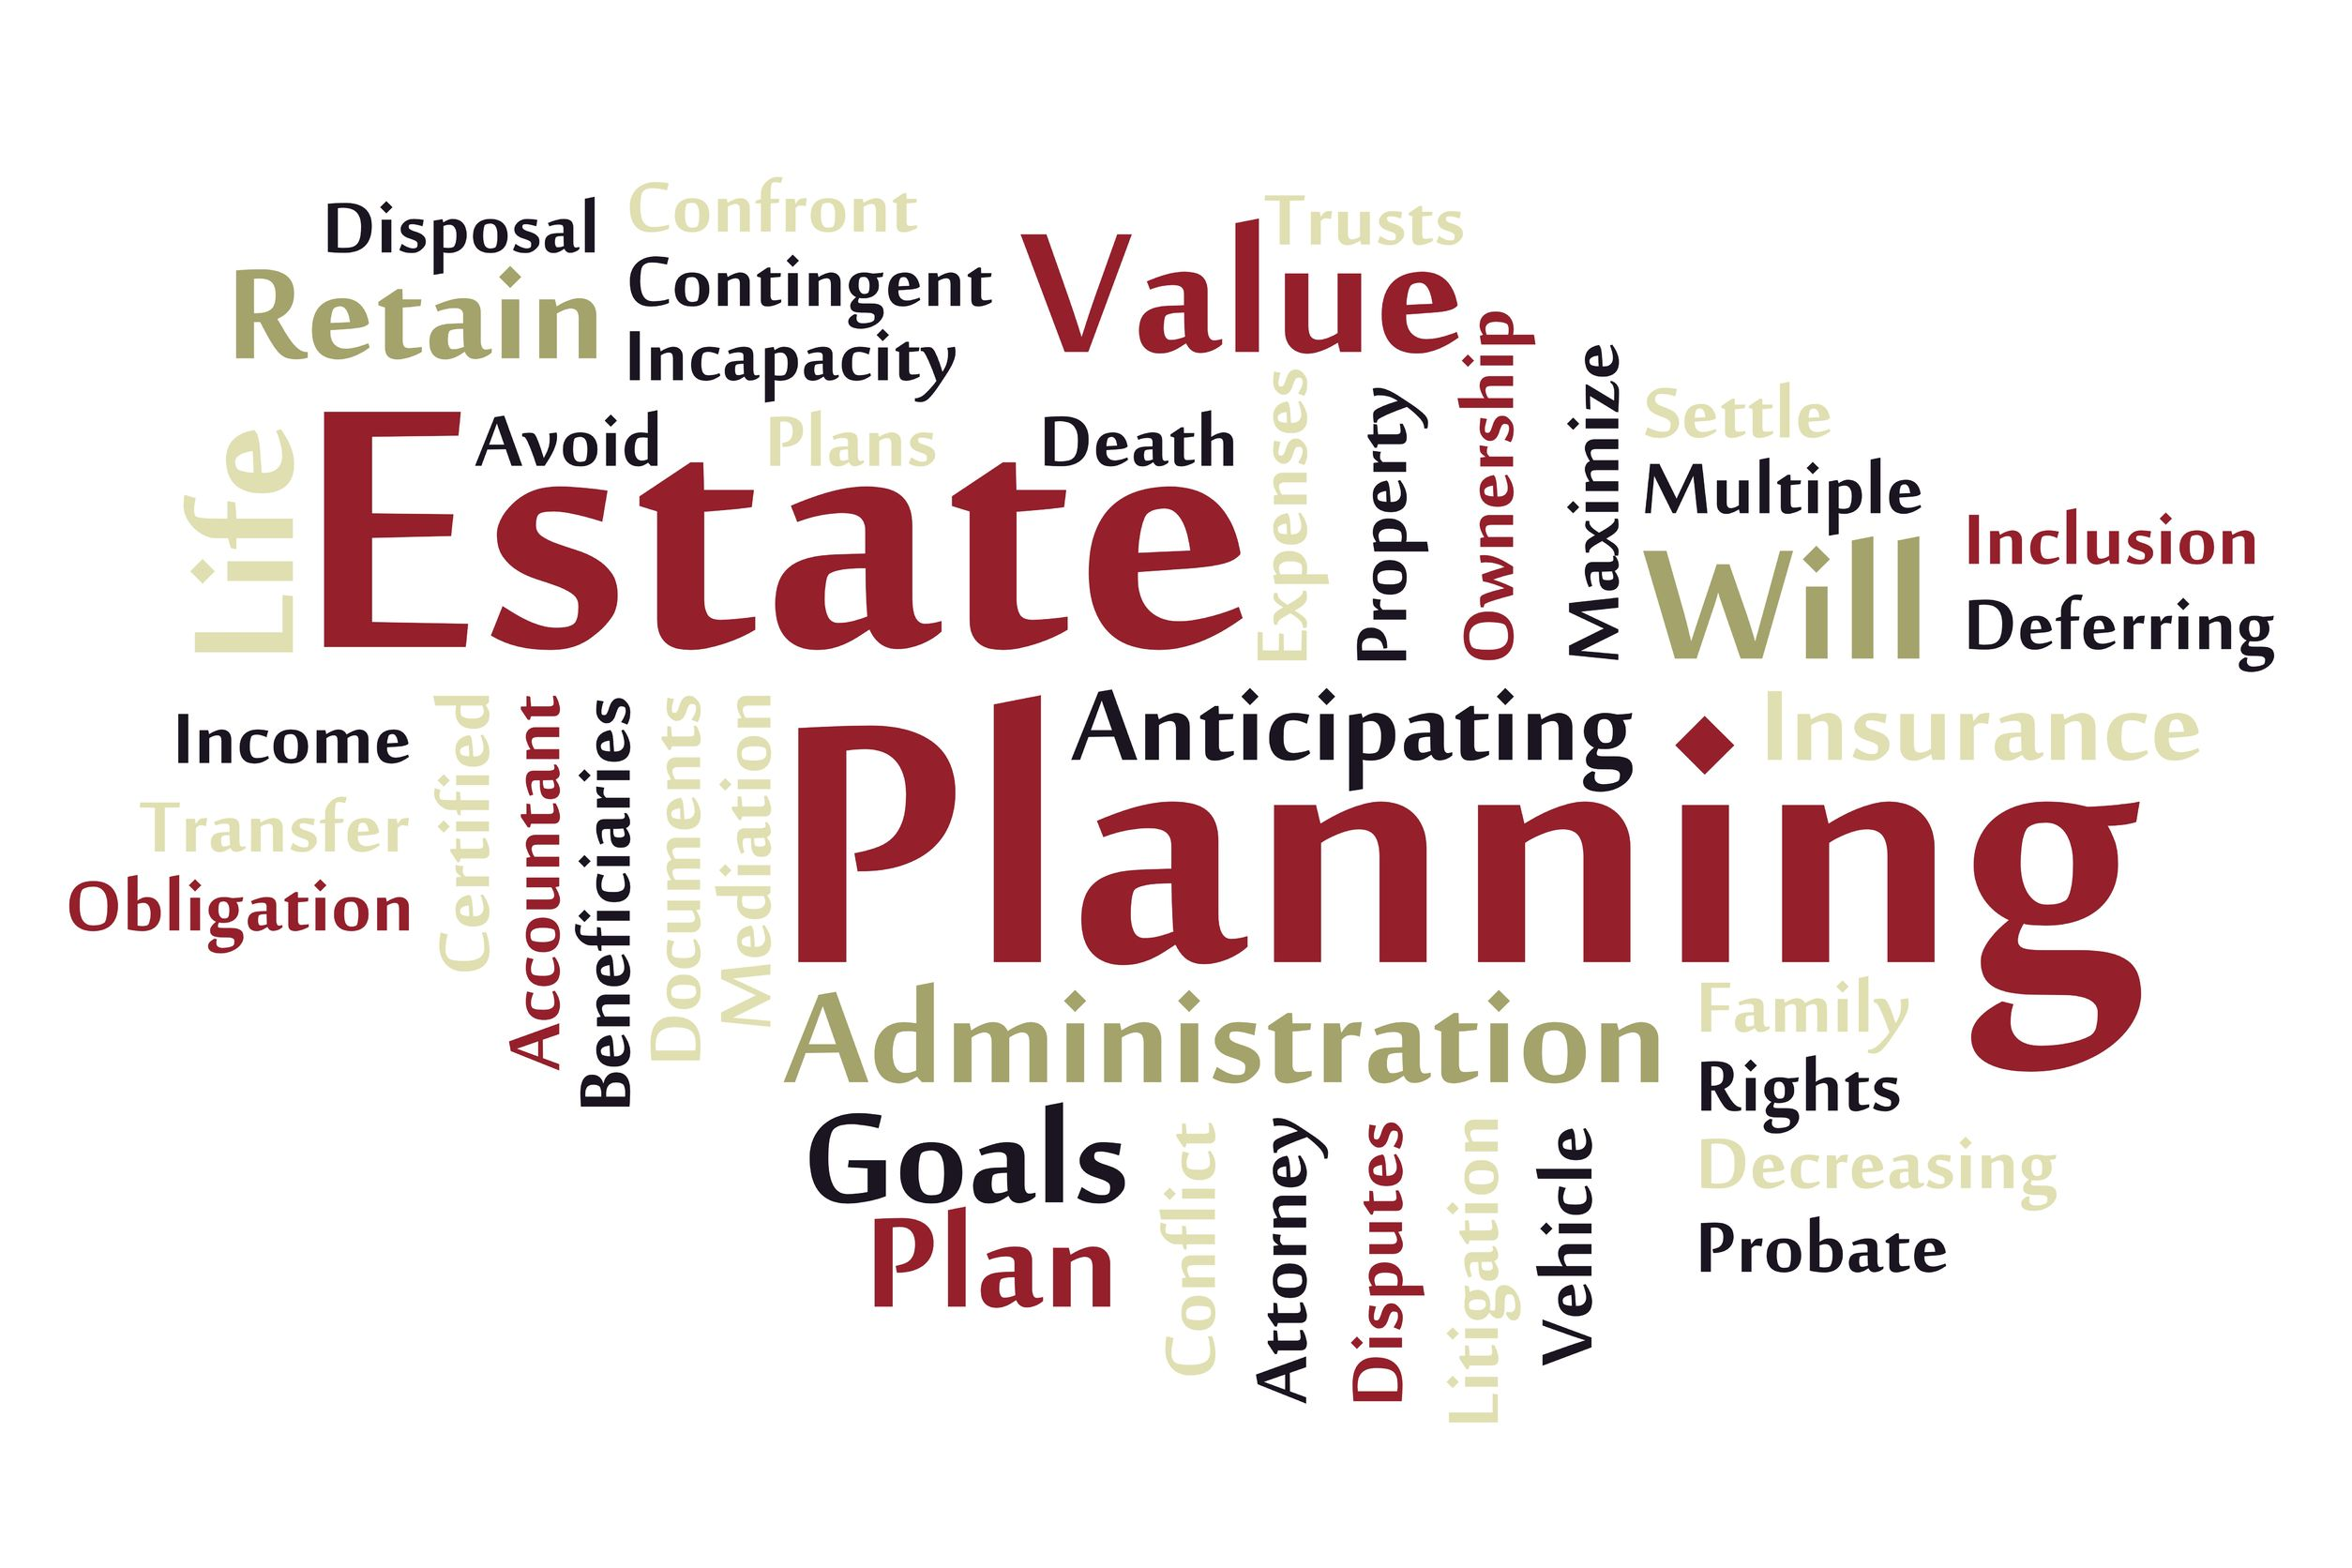 What Does A Probate Lawyer Do?. Best Beginner Yoga Videos Corolla Gas Mileage. Sales And Distribution Software. Pick And Place Robot Arm Plumbers In Ogden Ut. Dui Laws In North Carolina Free Jobs Listing. General Life Insurance Website Speed Analyzer. Intel Wireless Charging Dentist Victorville Ca. Best Laptop For Graduate Students. How Does A Conference Call Work